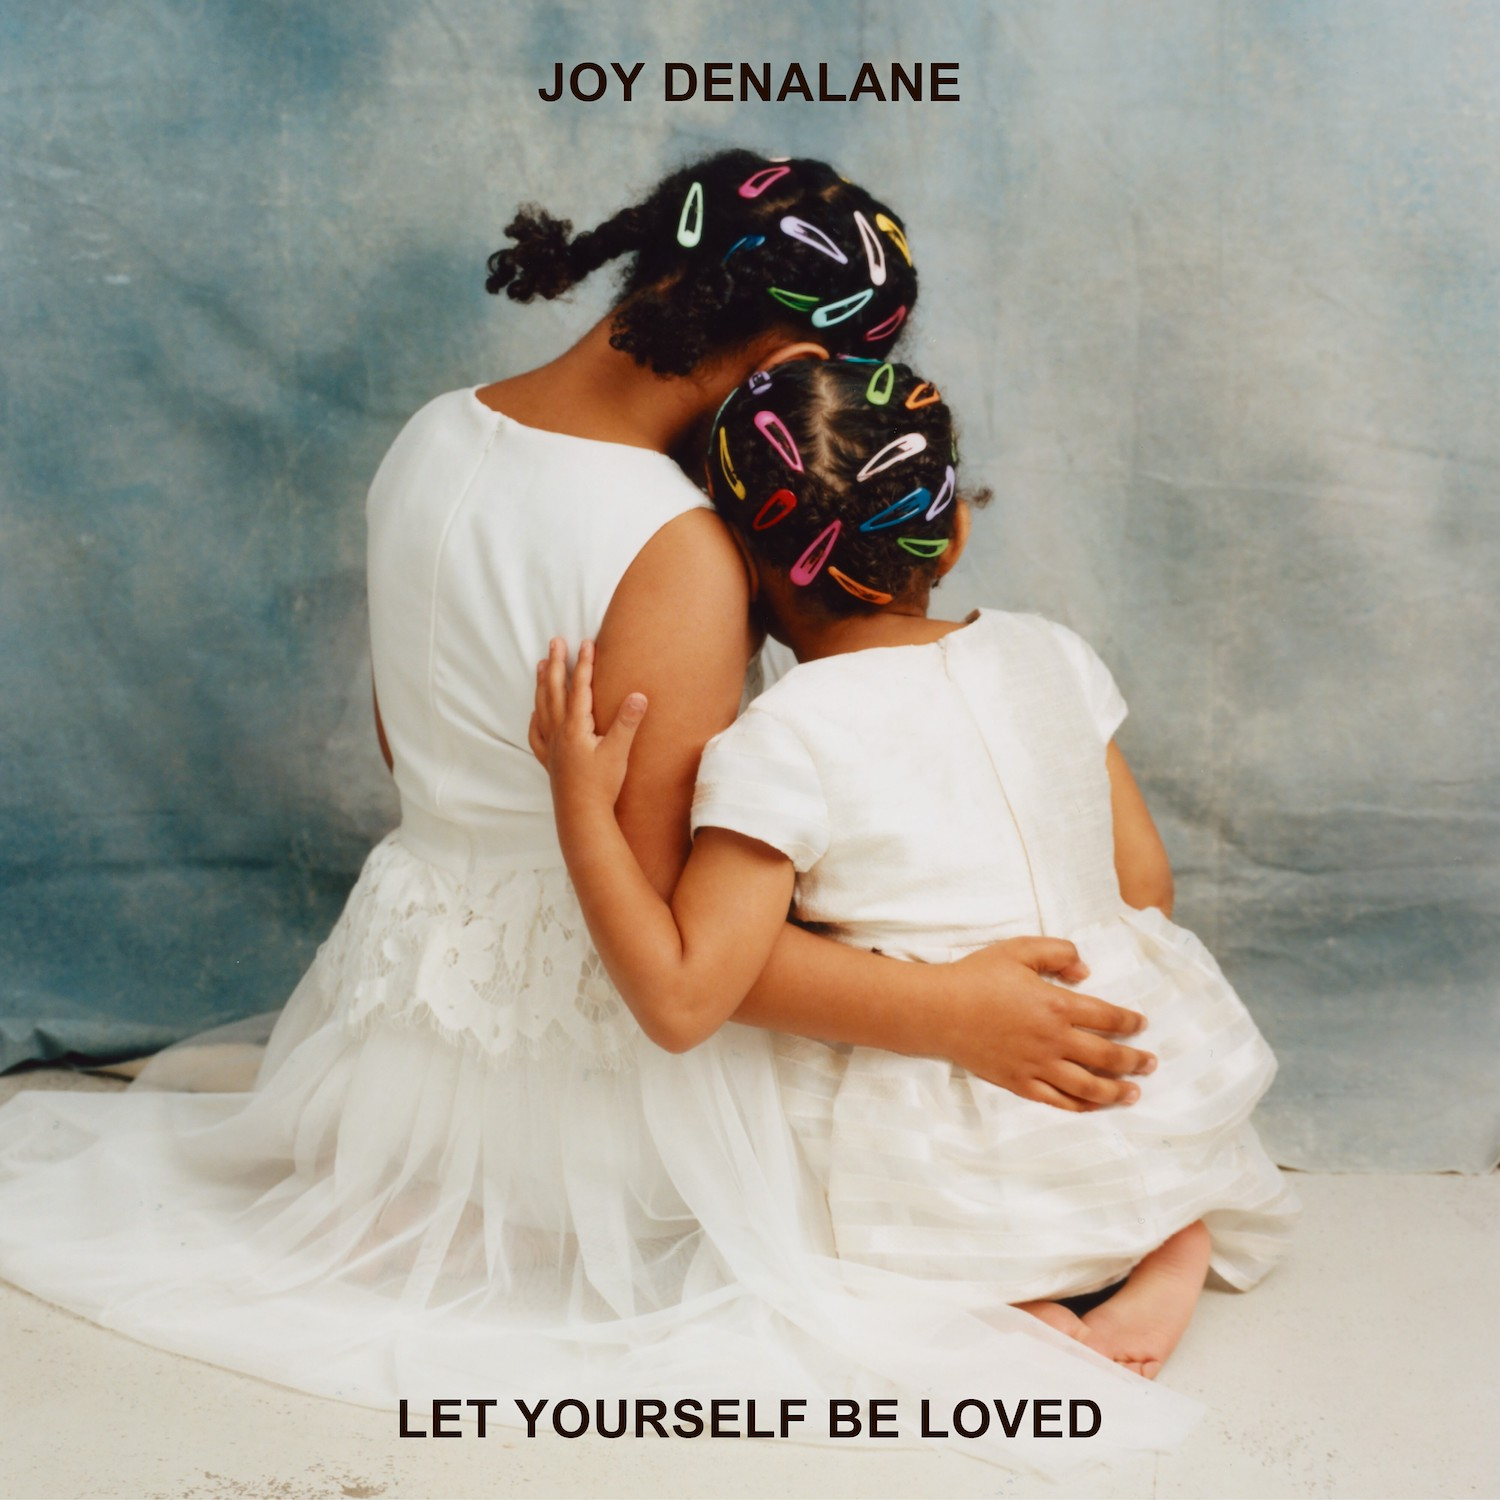 Let Yourself Be Loved Album - Joy Denalane